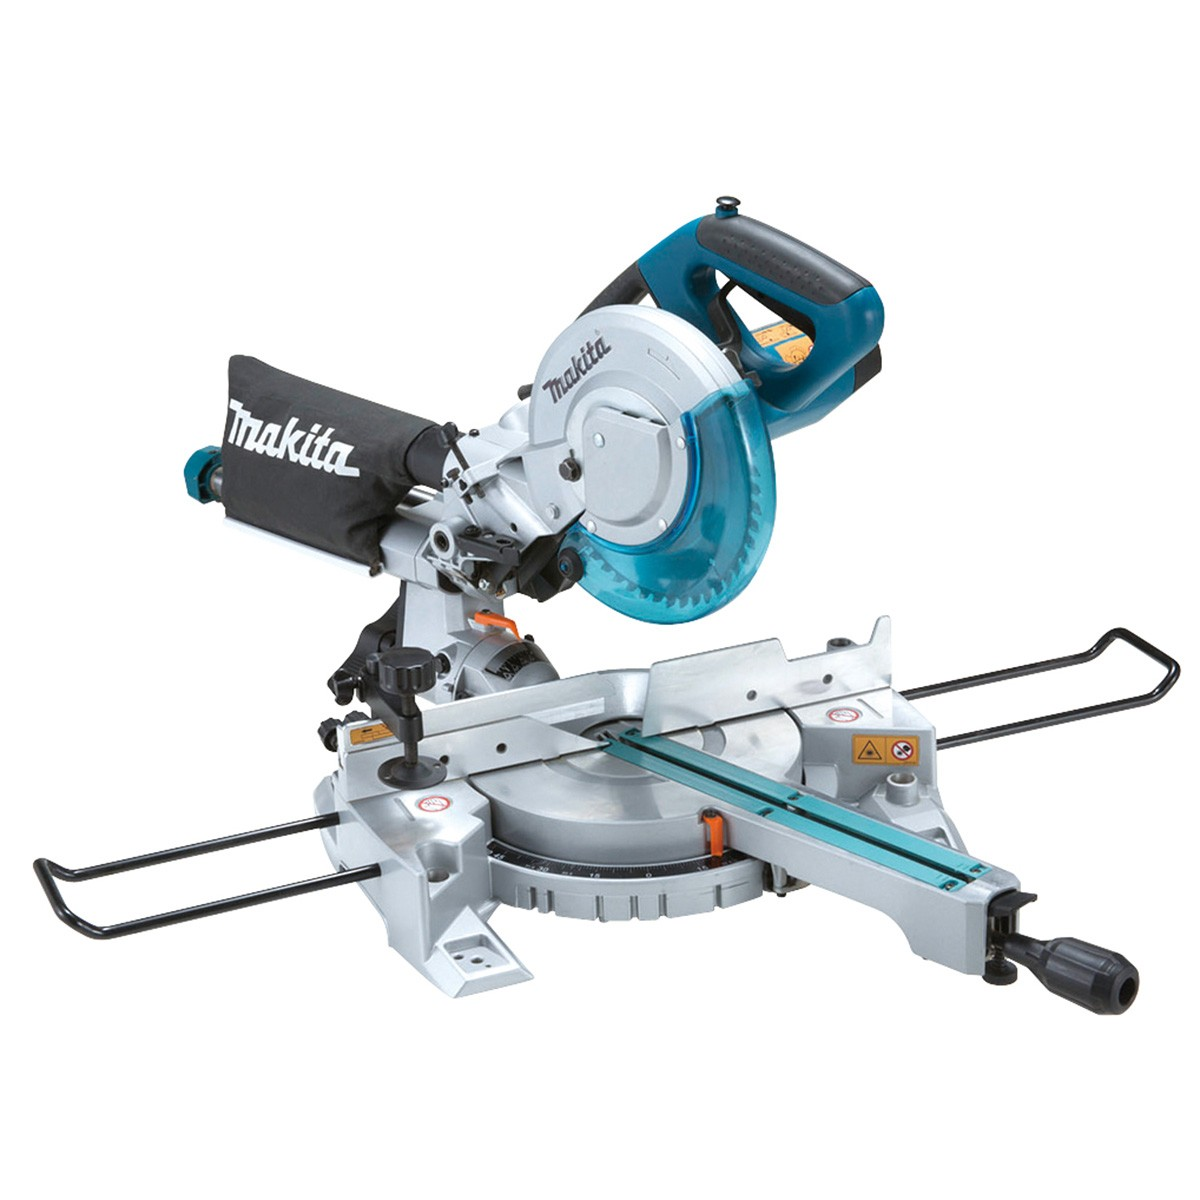 Makita LS0815FL Slide Compound Mitre Saw 216mm 110v